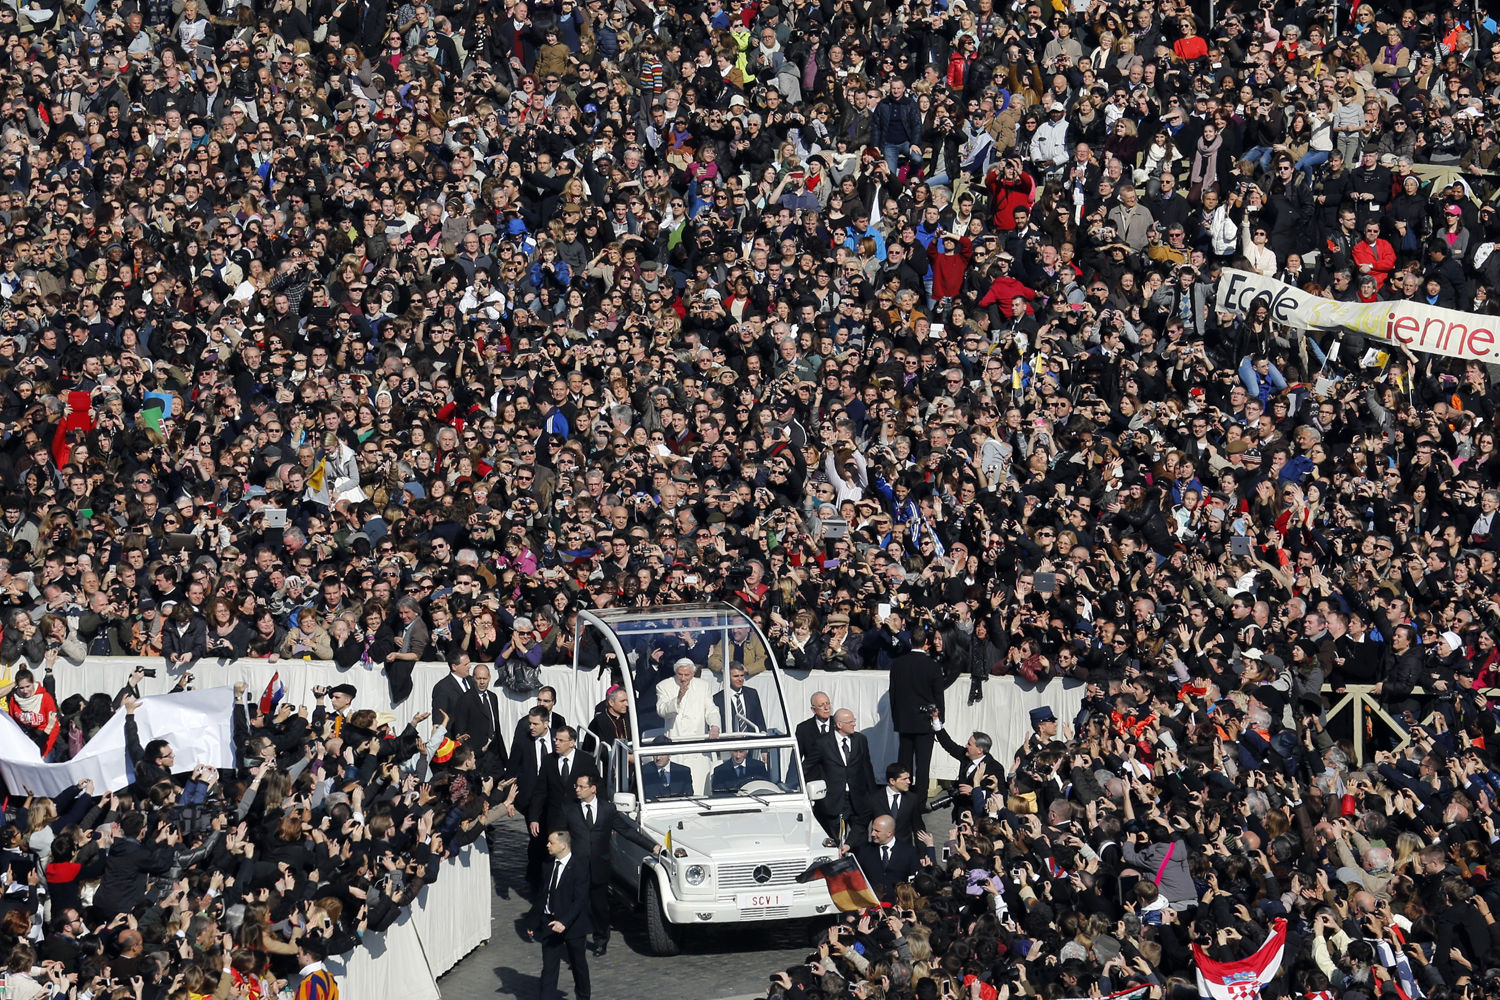 Feb. 27, 2013. Pope Benedict XVI waves from his Popemobile as he rides through a packed Saint Peter's Square at the Vatican during his last general audience.